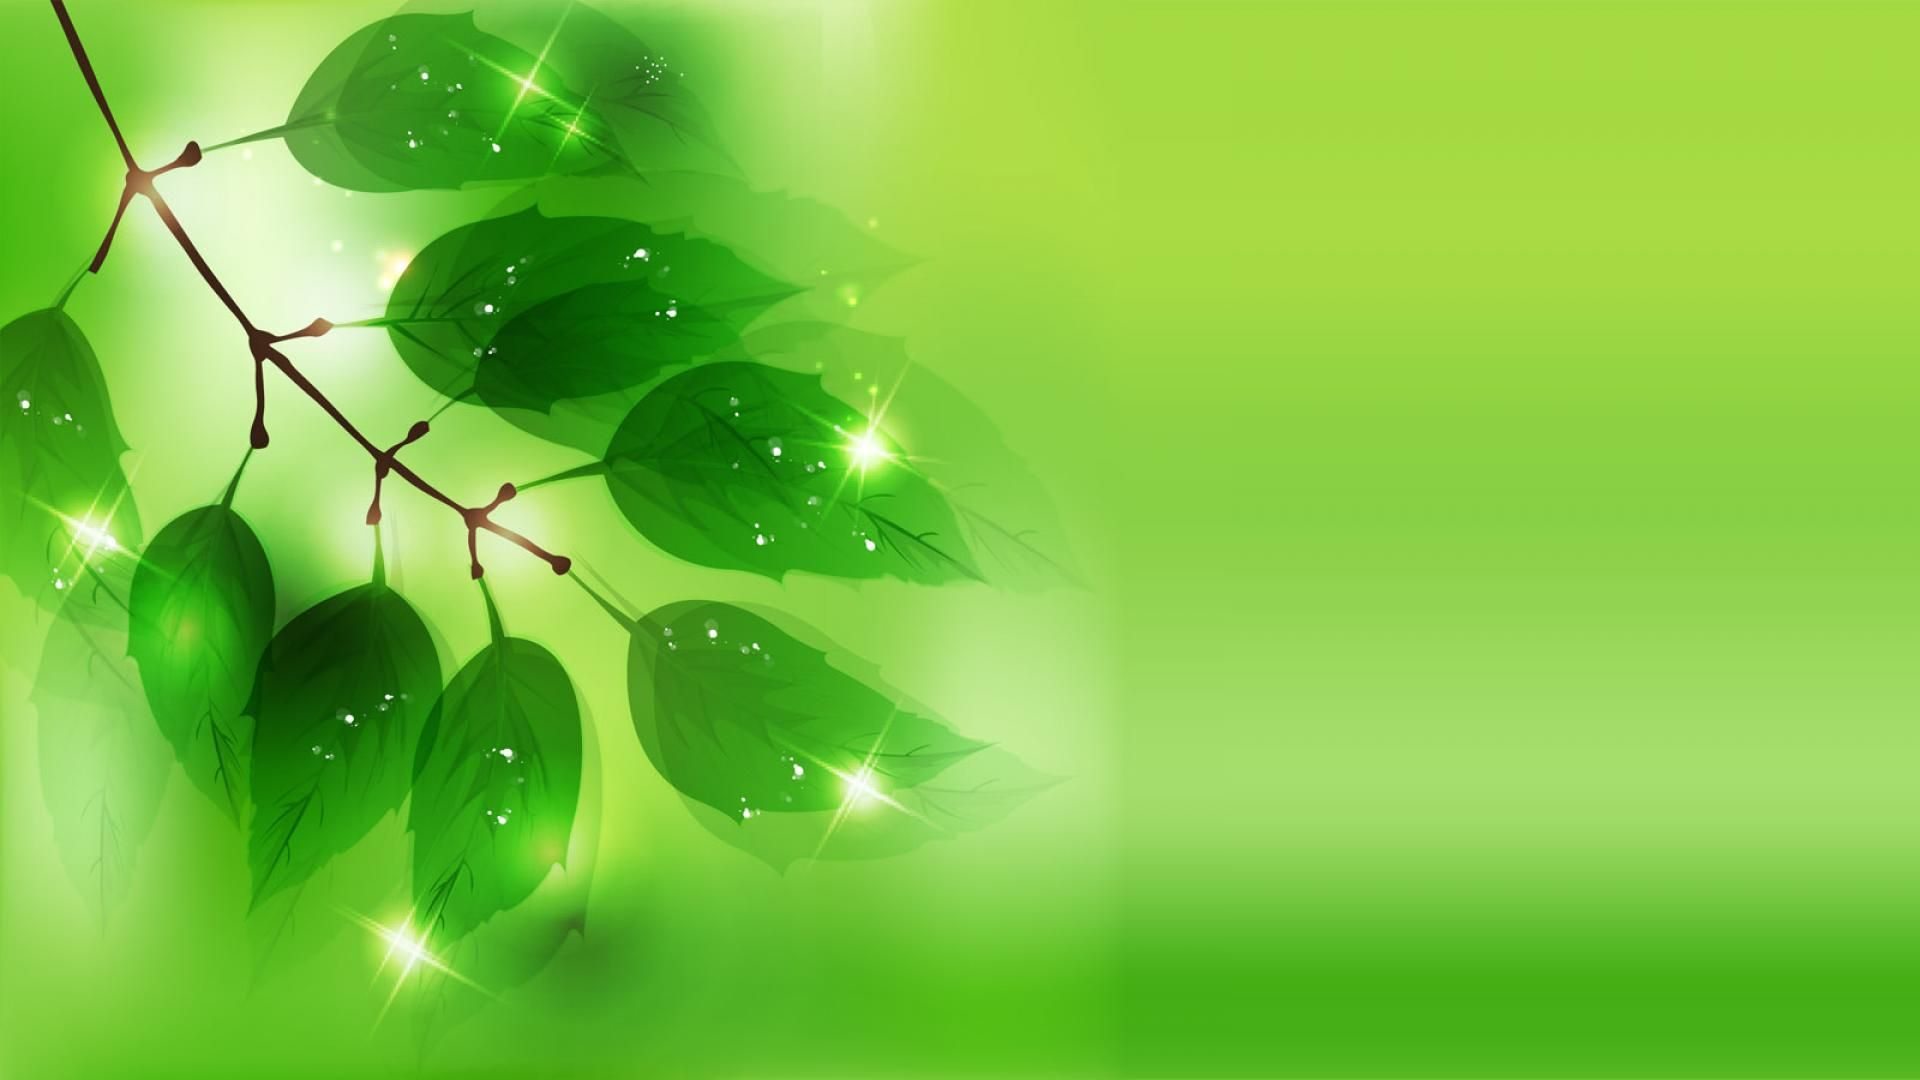 green-background-vector-wallpaper-wallpaper-green-for-desktop-background-abstract-islamic-light ...